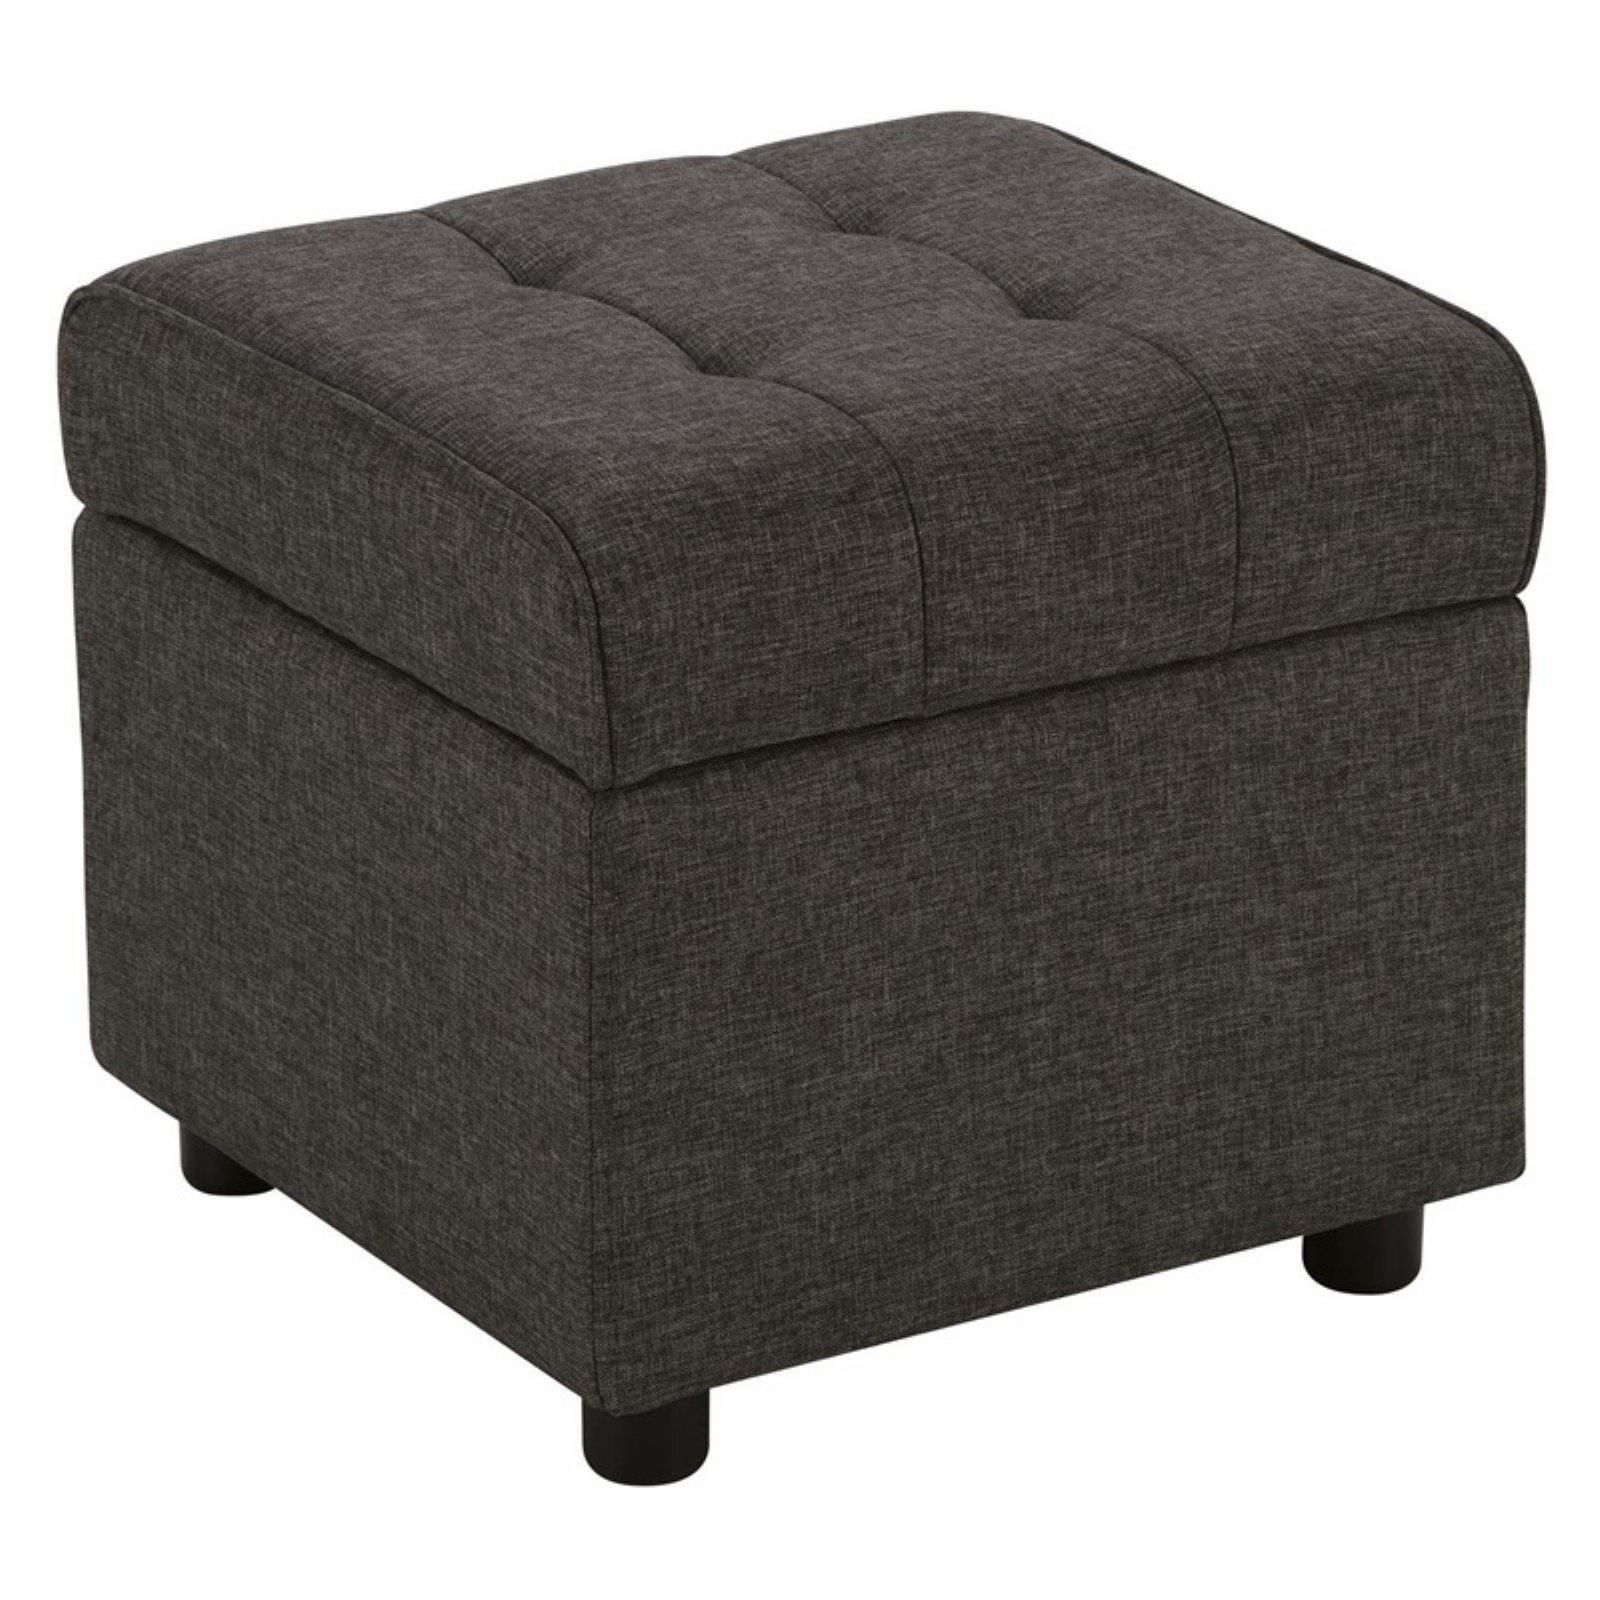 DHP Emily Square Tufted Storage Ottoman, Available in Various Colors by Dorel Home Products